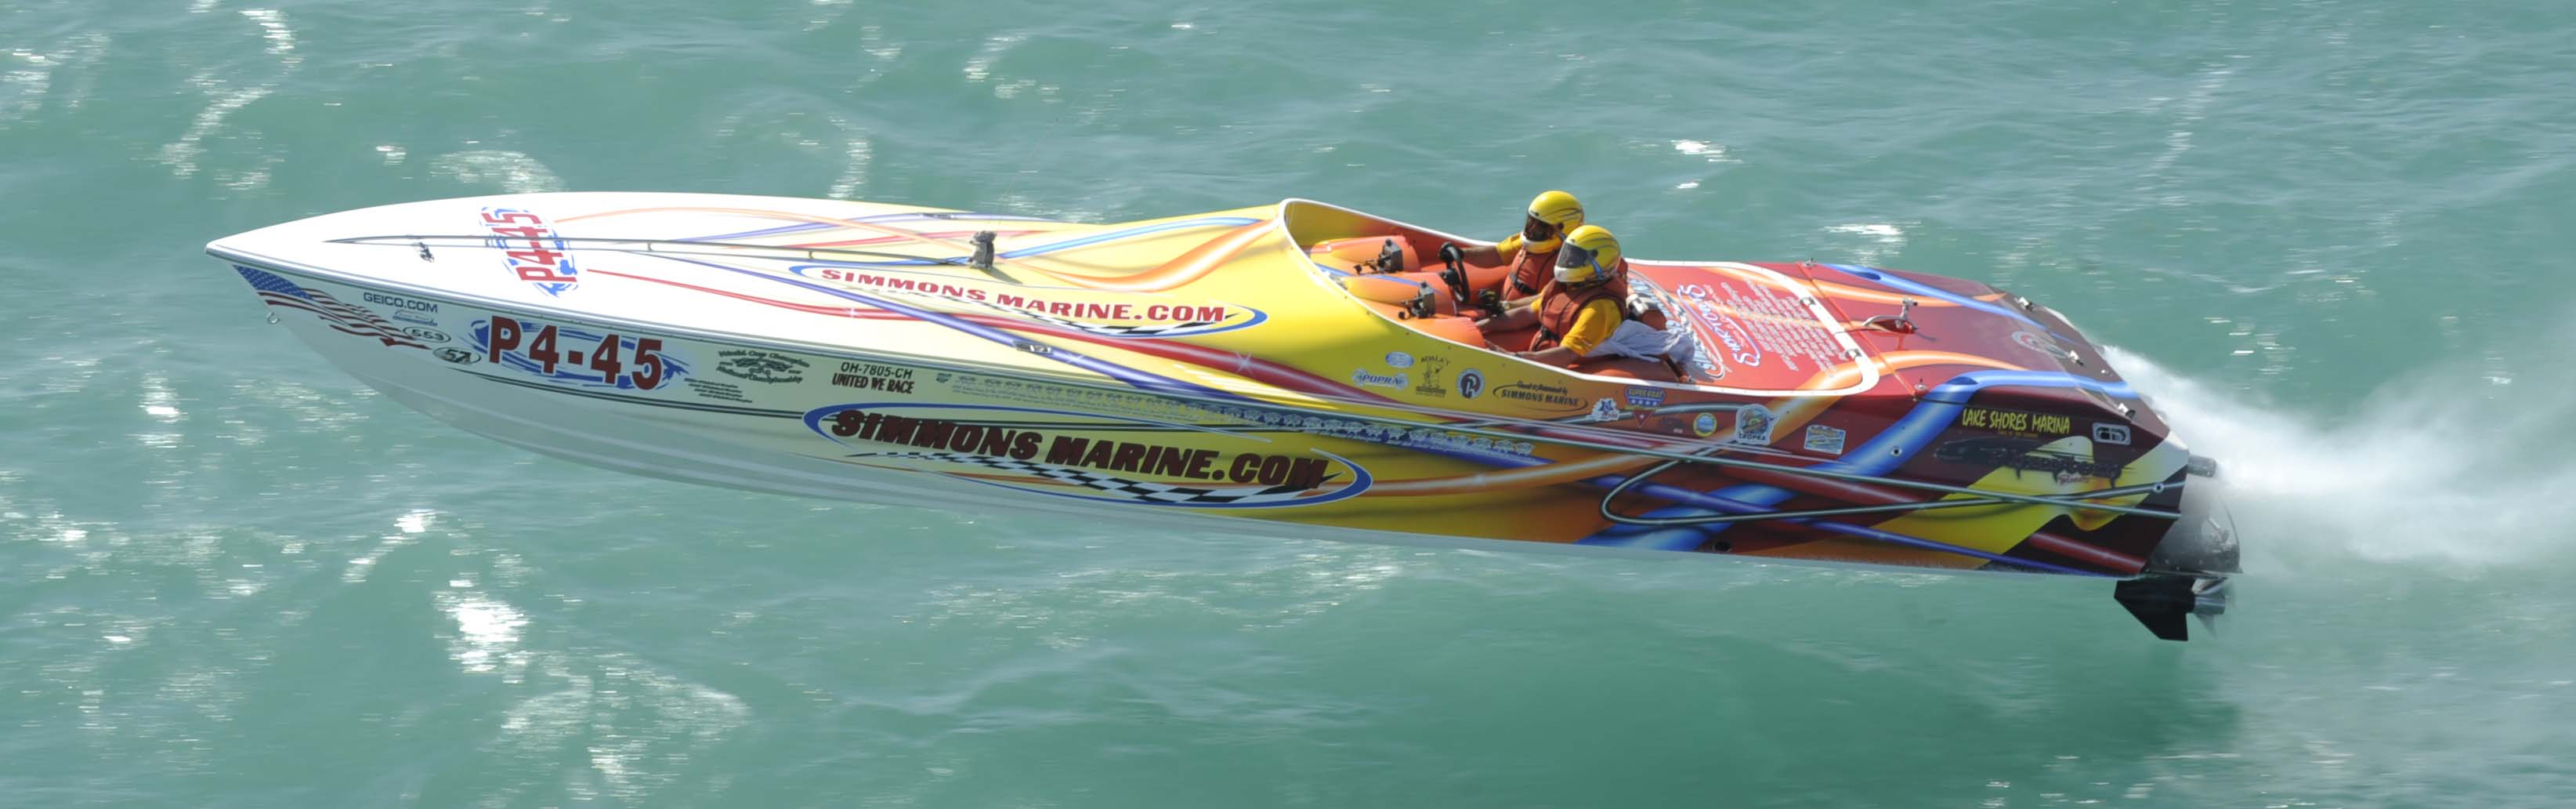 Boat Racing wallpapers, Sports, HQ Boat Racing pictures | 4K ...